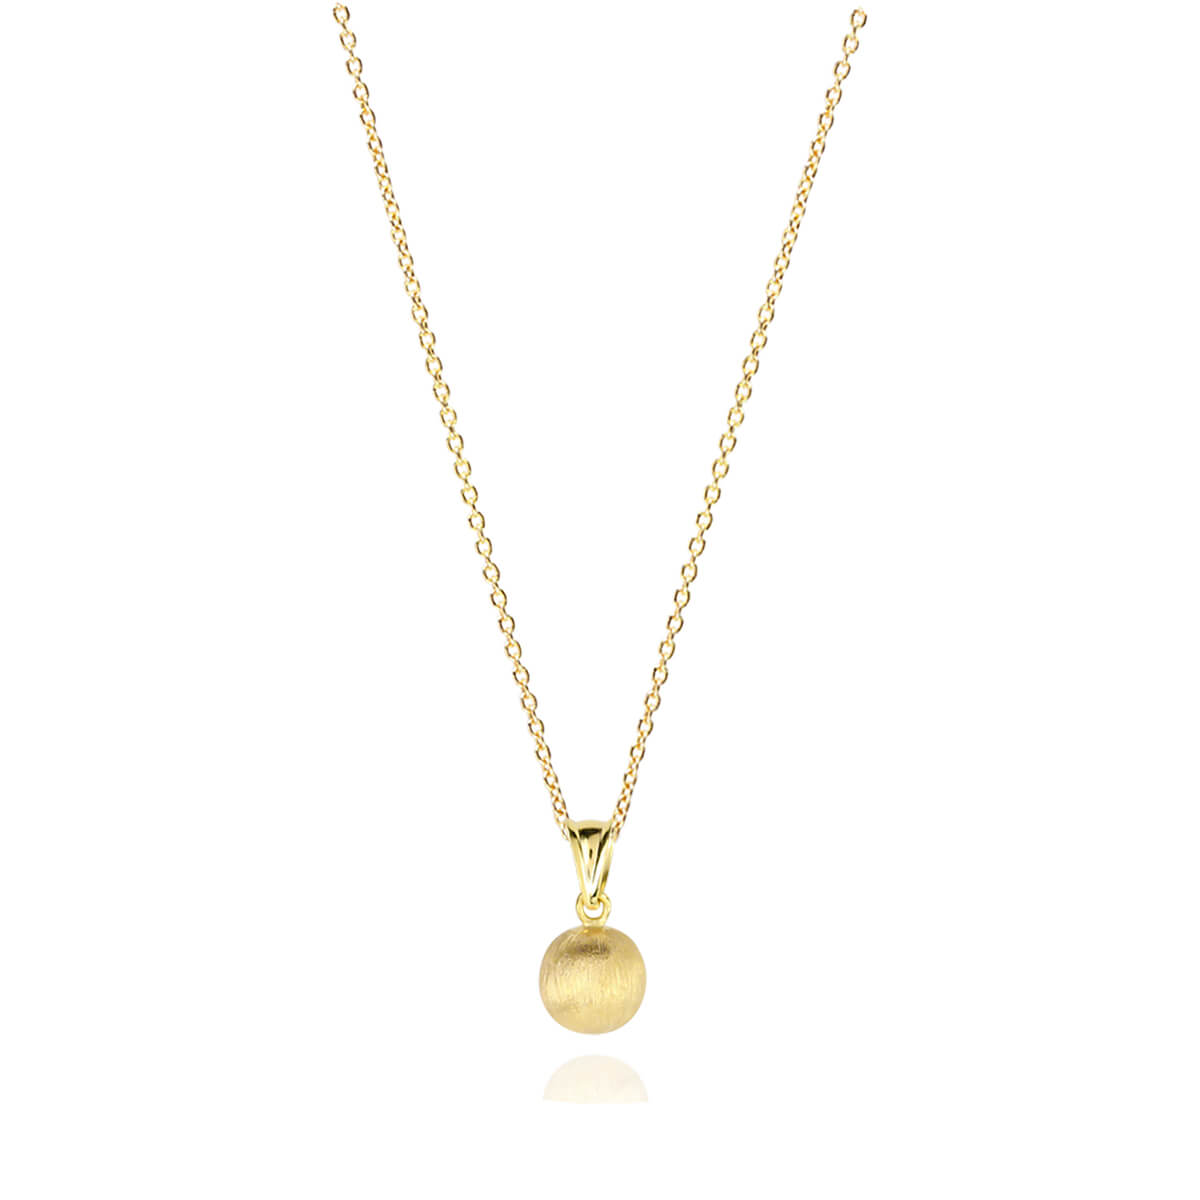 Sphere 18ct Yellow Gold Pendant Chain Necklace